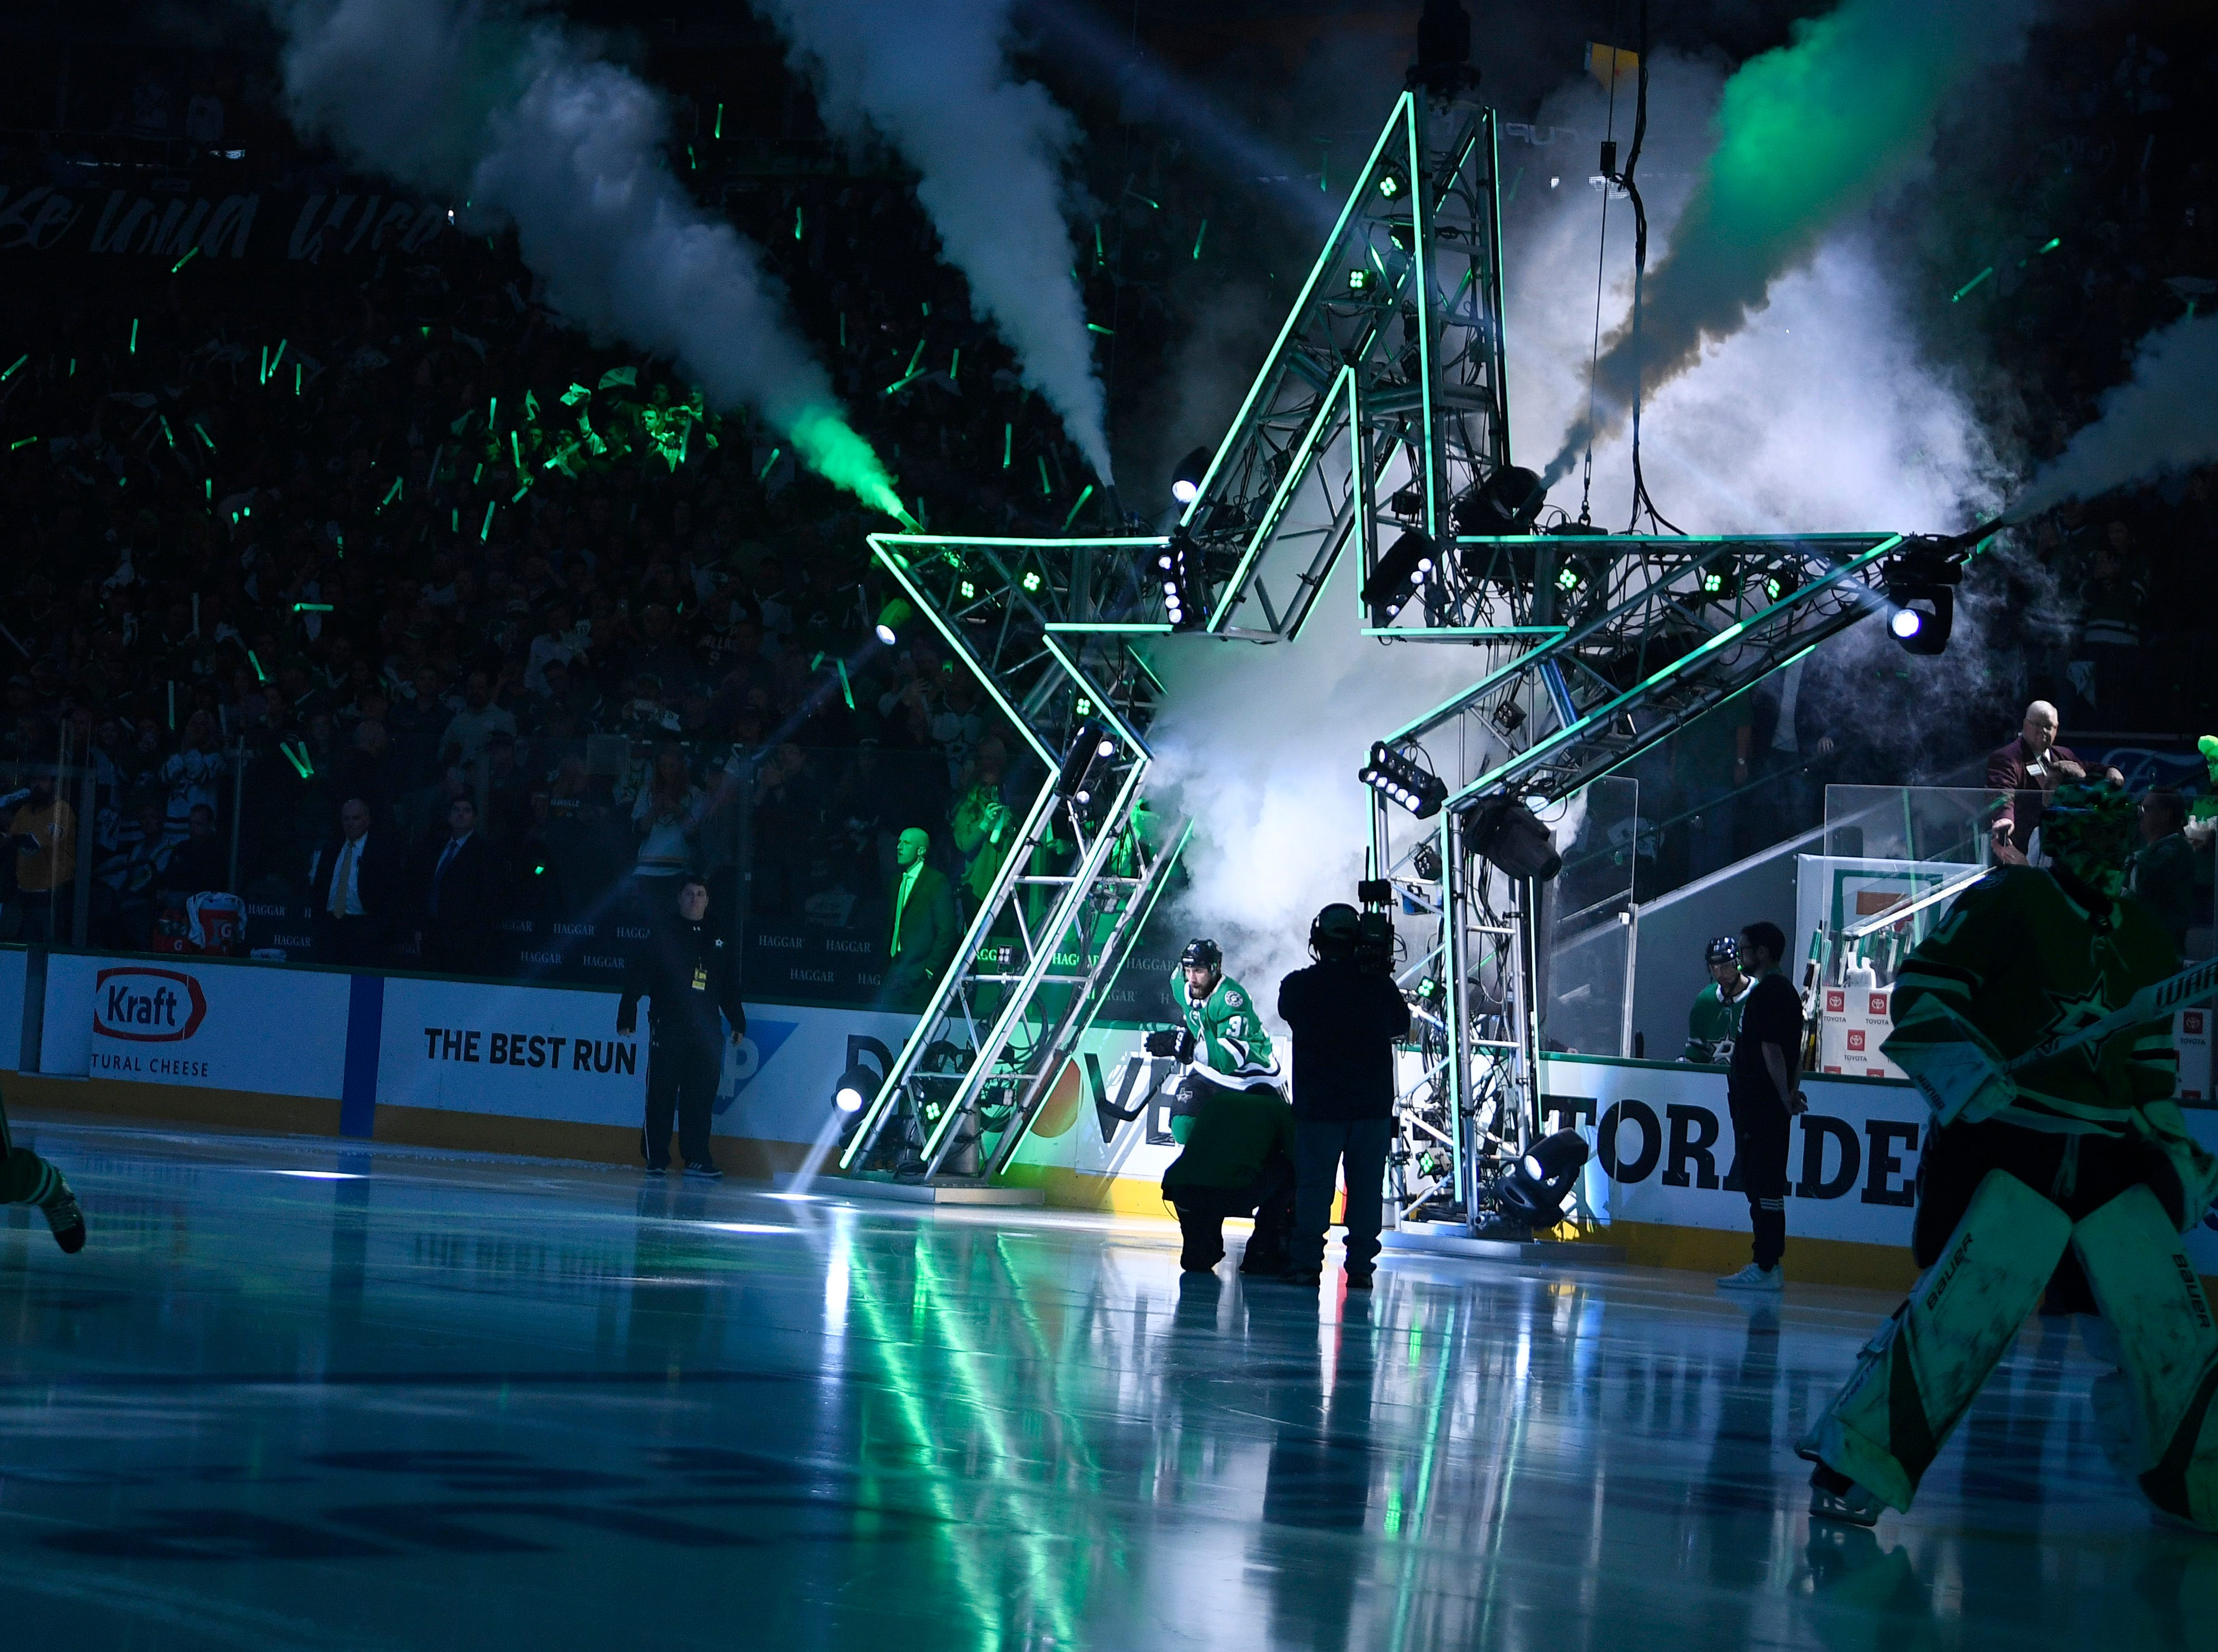 The Dallas Stars head onto the ice for the beginning during of the divisional semifinal game against the Predators at the American Airlines Center in Dallas, Texas, Monday, April 22, 2019.